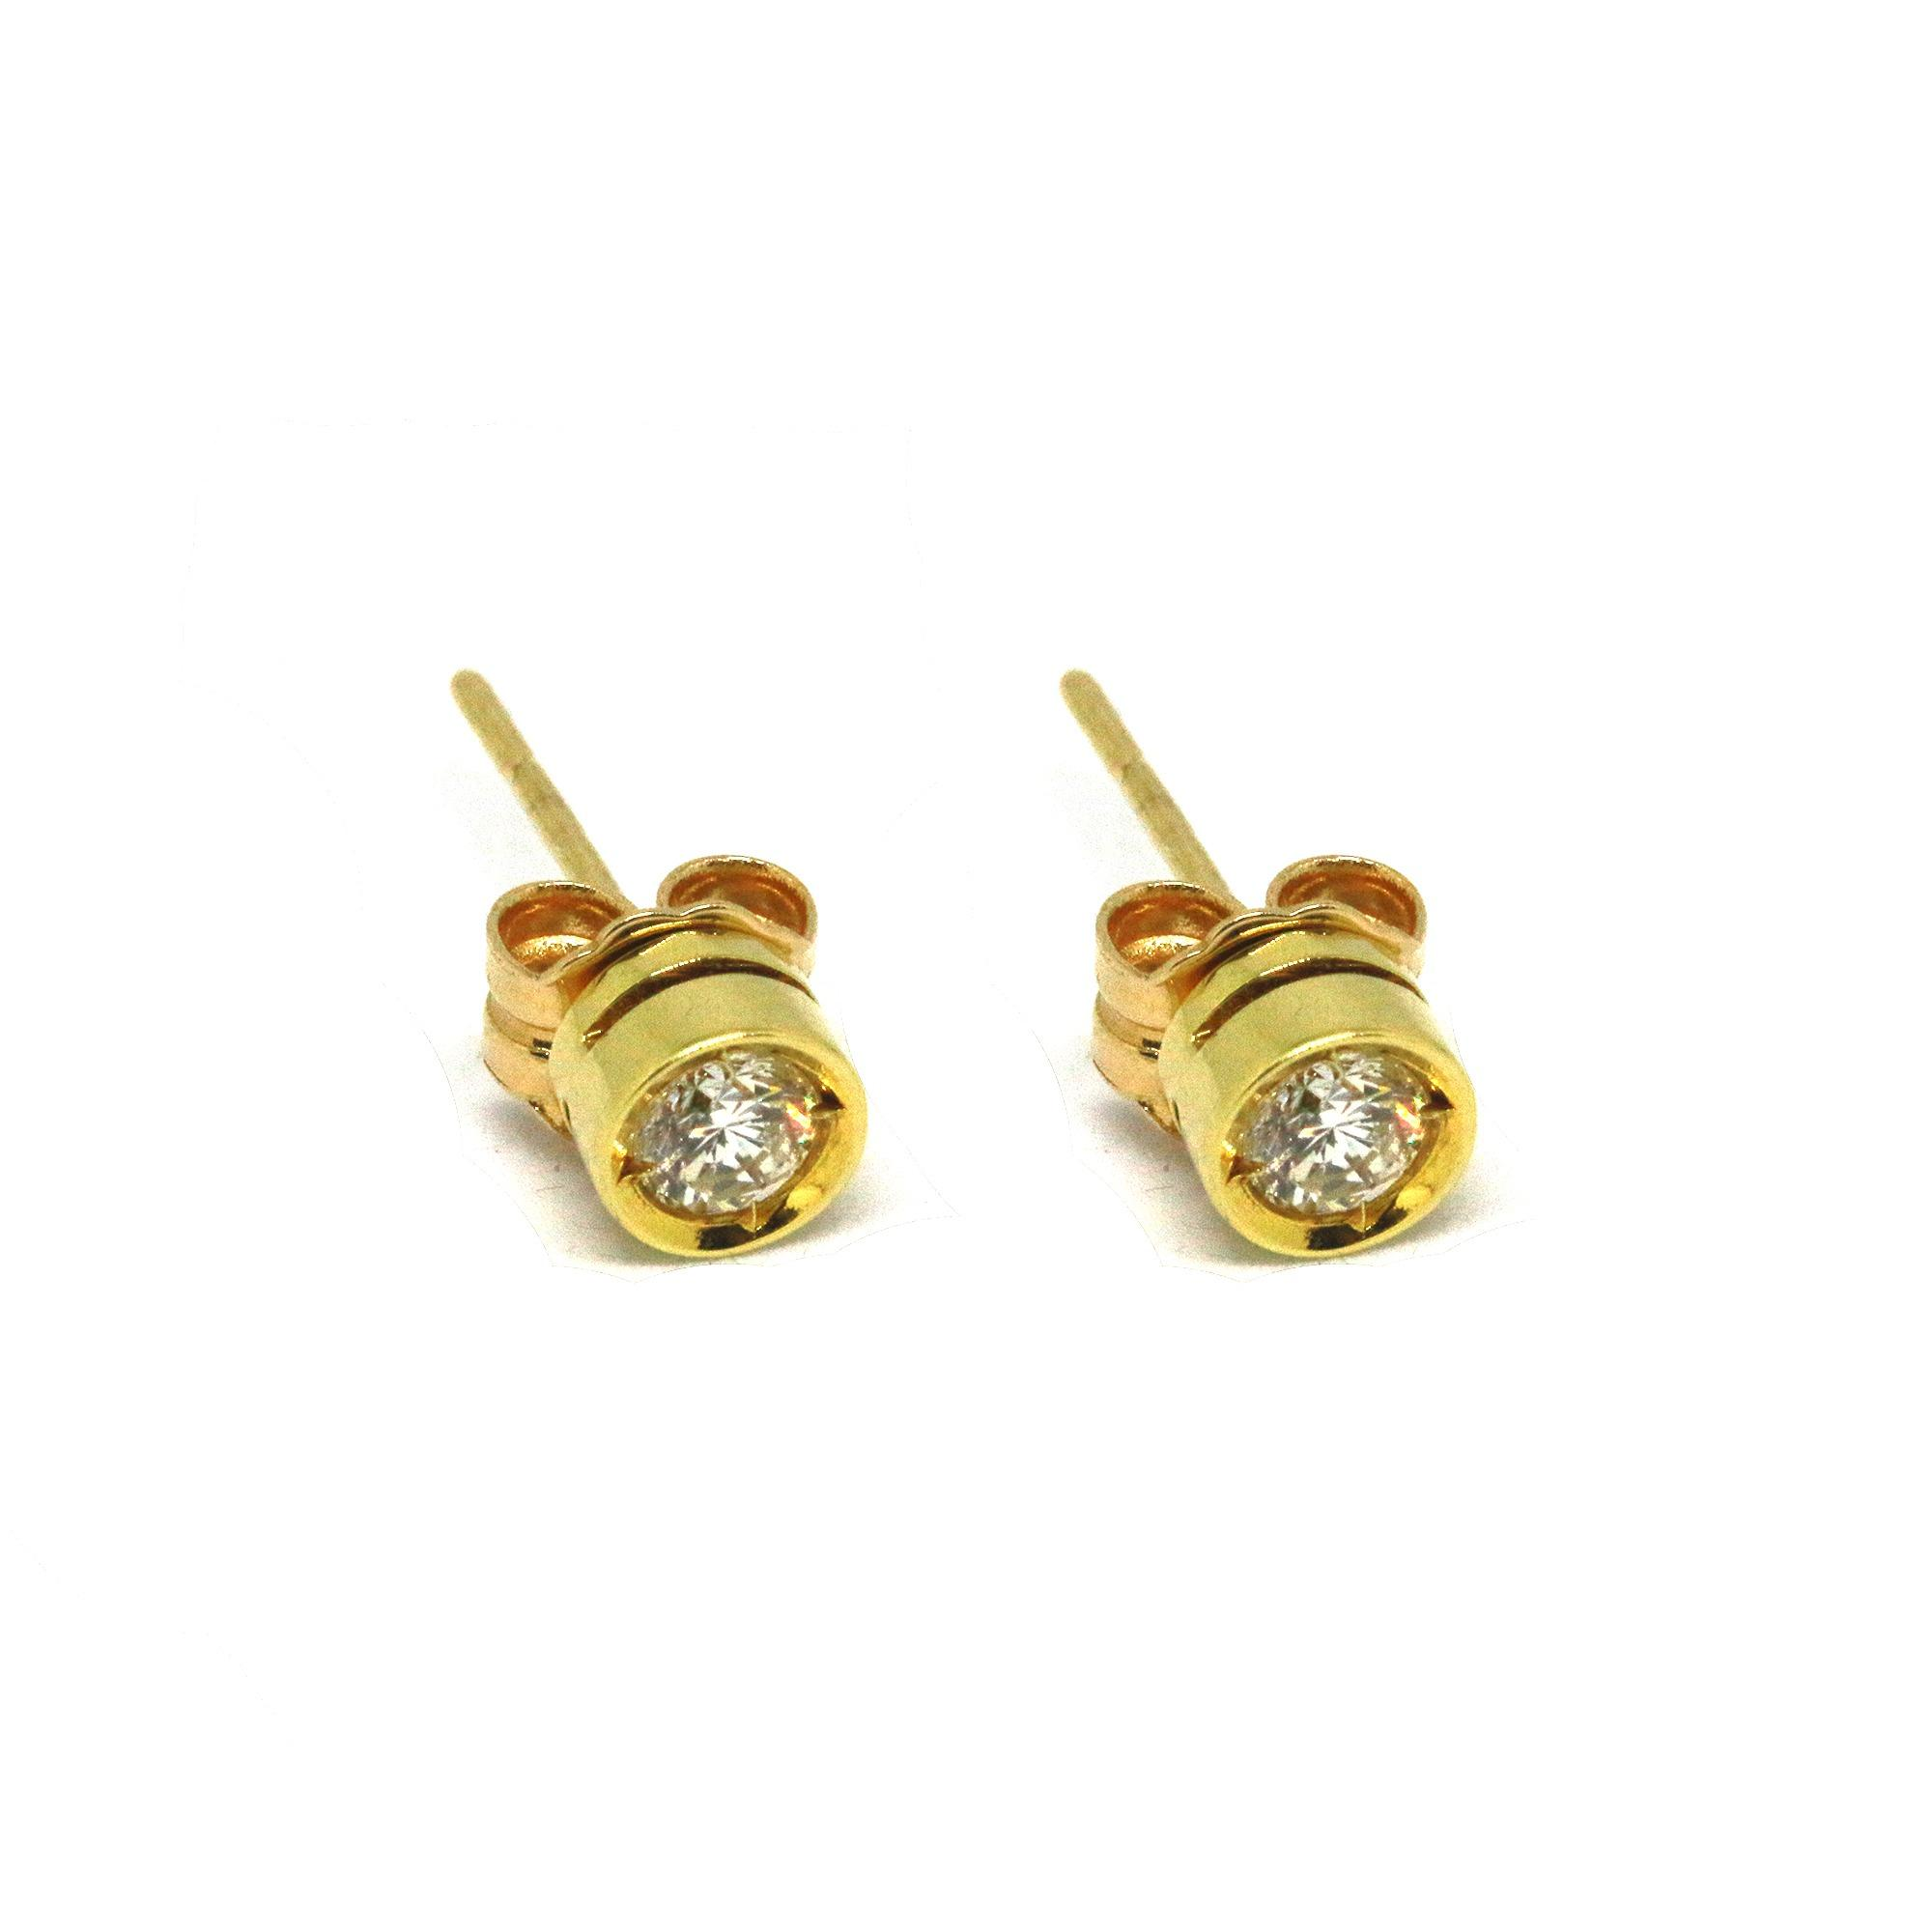 semilla product stud earrings gold sevilla ellenwood shakti semillanoths fairtrade in small ethical